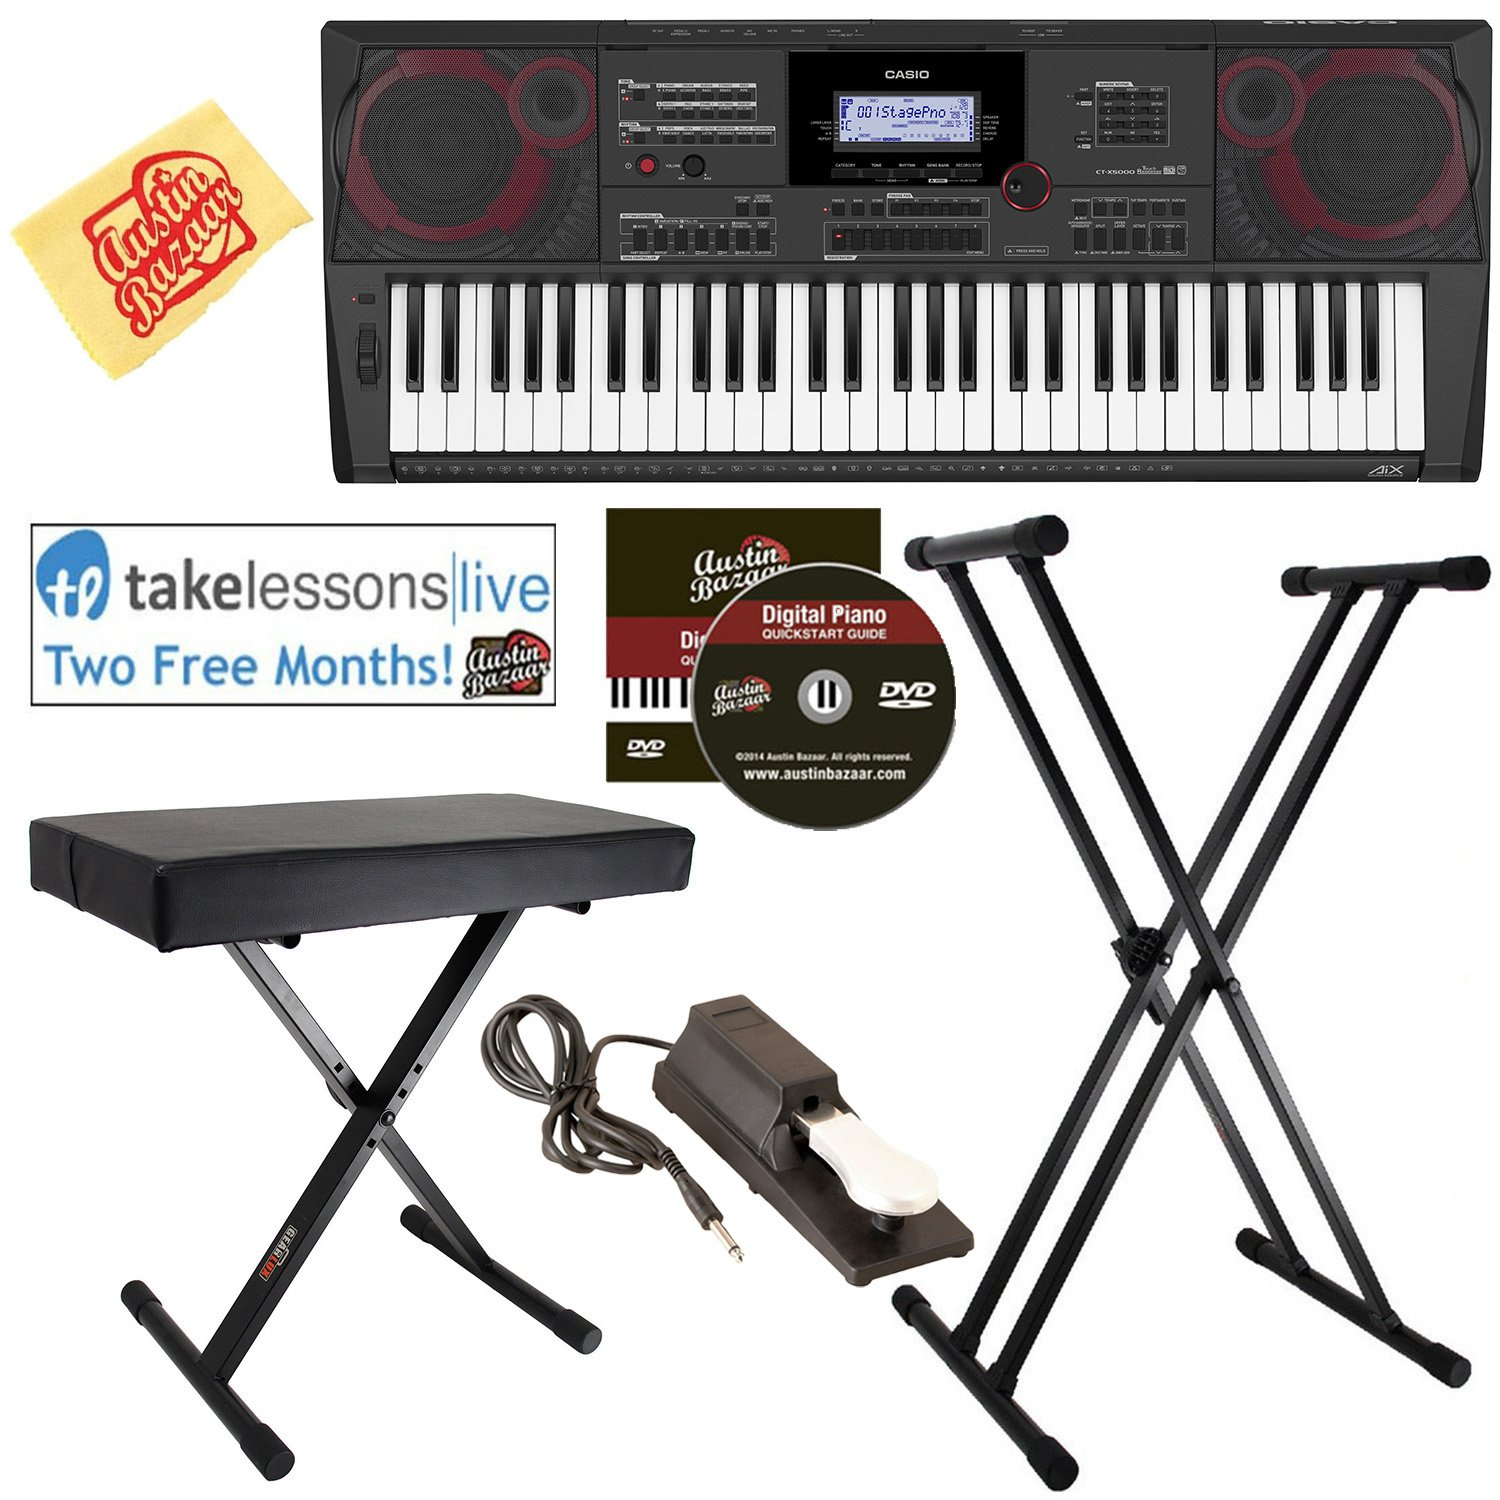 Casio CT-X5000 Keyboard Bundle with Adjustable Stand, Bench, Sustain Pedal, Online Lessons, Austin Bazaar Instructional DVD, and Polishing Cloth